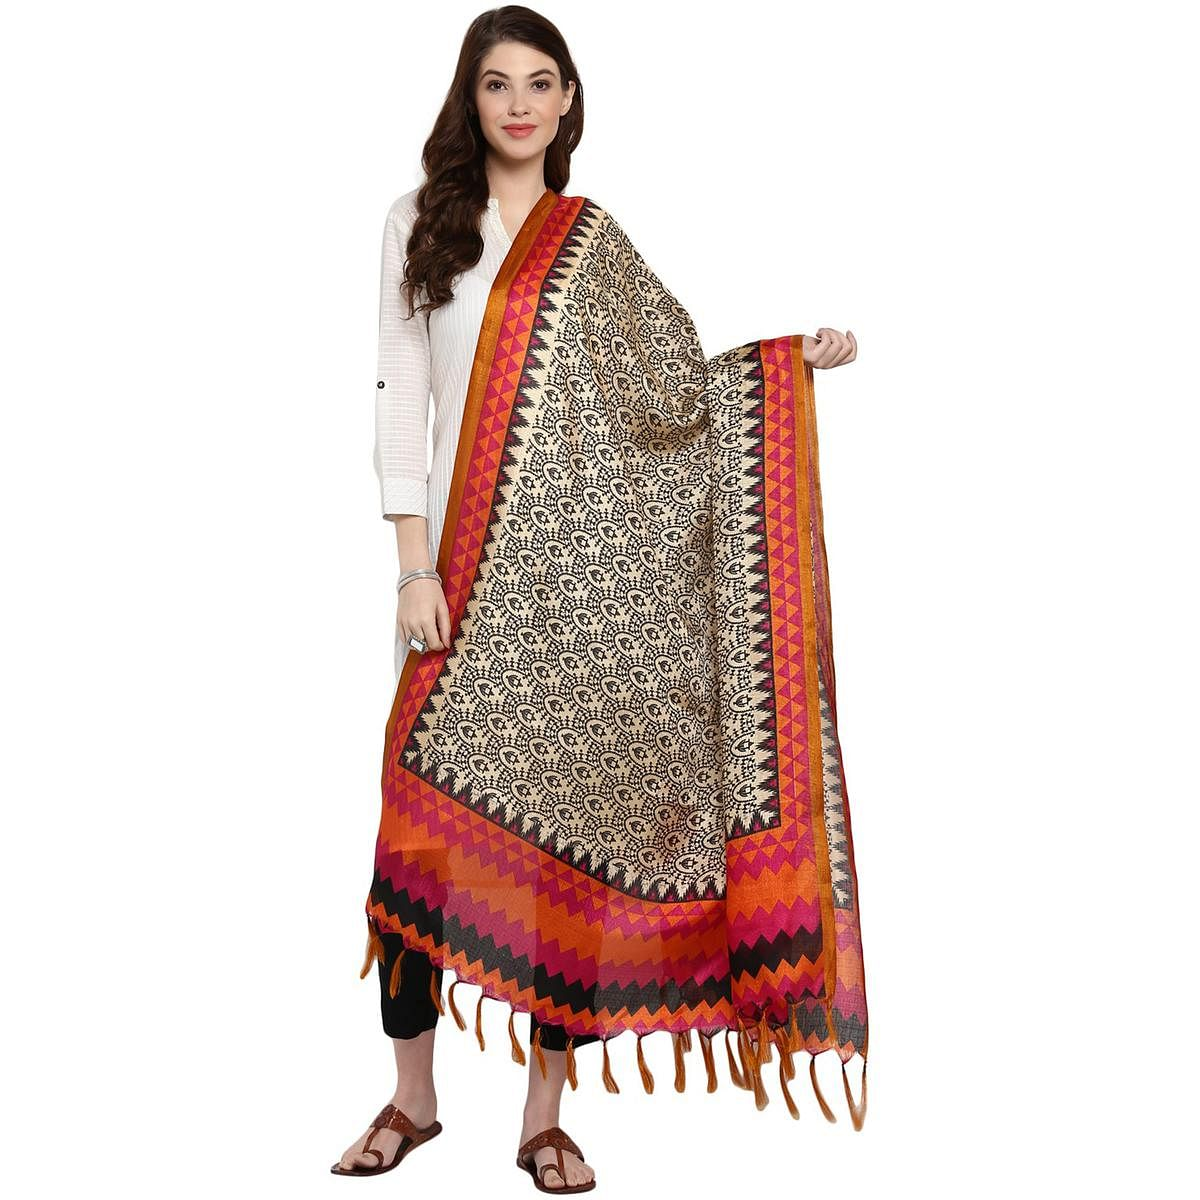 Extraordinary Beige-Orange Colored Casual Printed Khadi Silk Dupatta